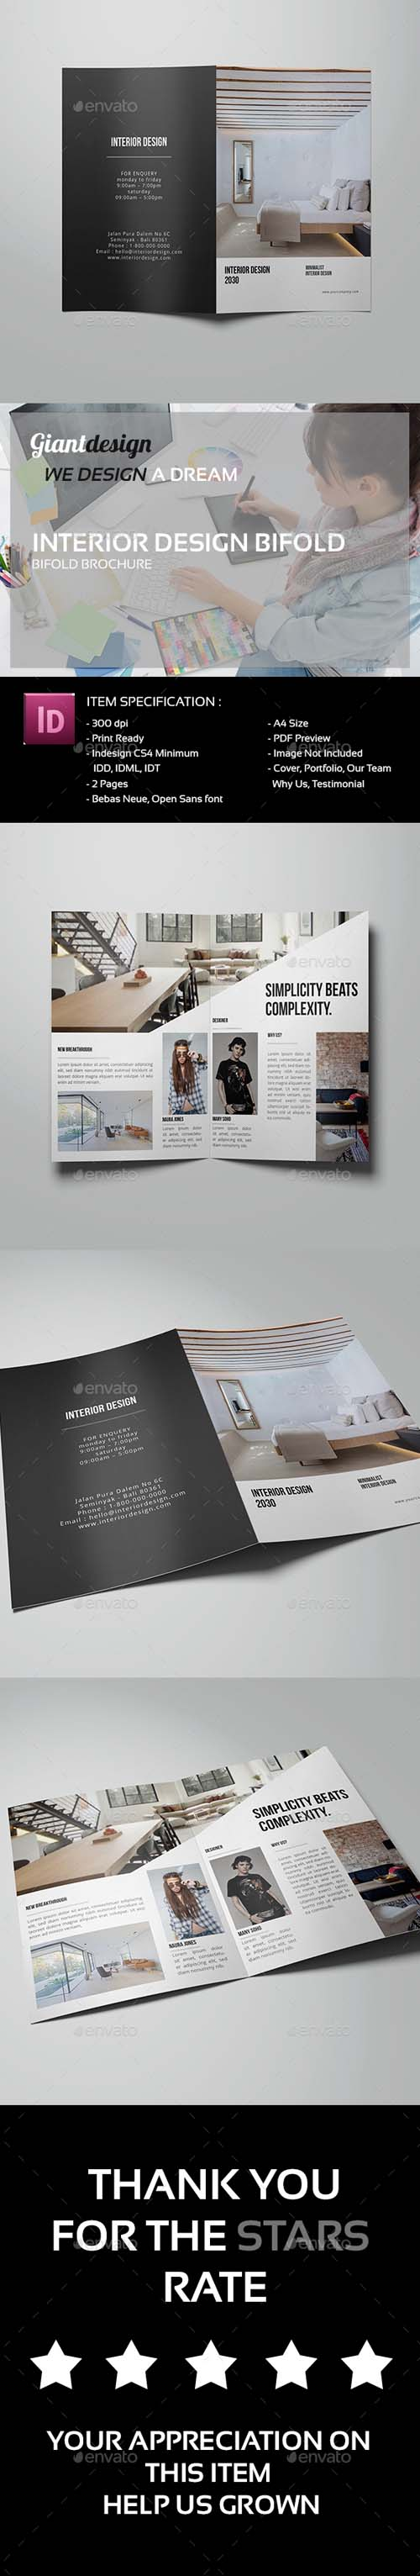 Interior Design Bifold Brochure 13681663